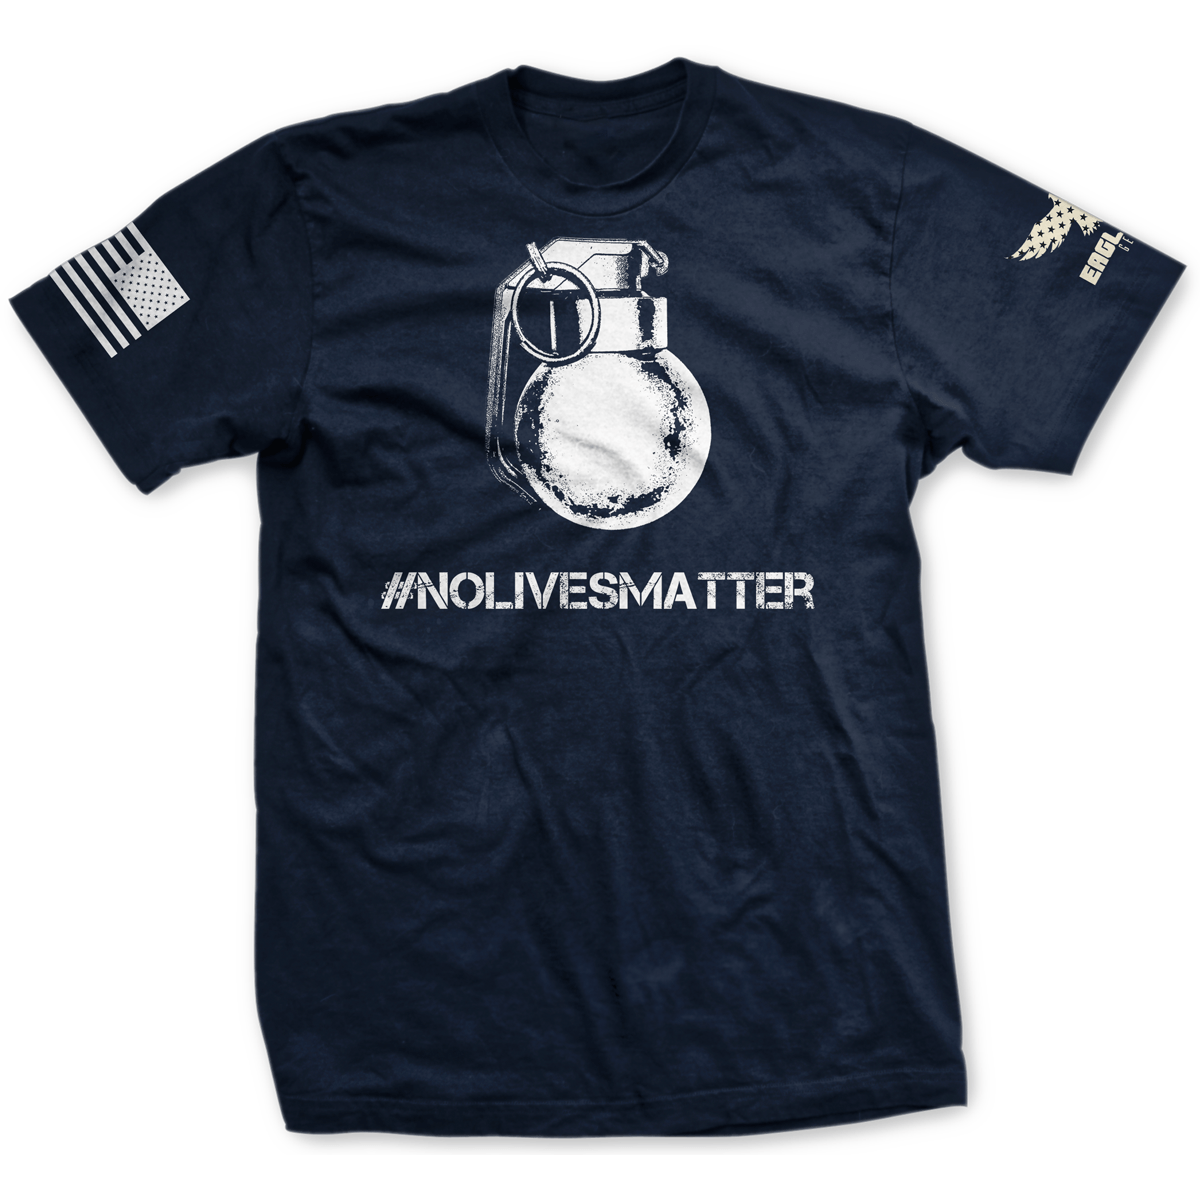 #nolivesmatter tee - Limited